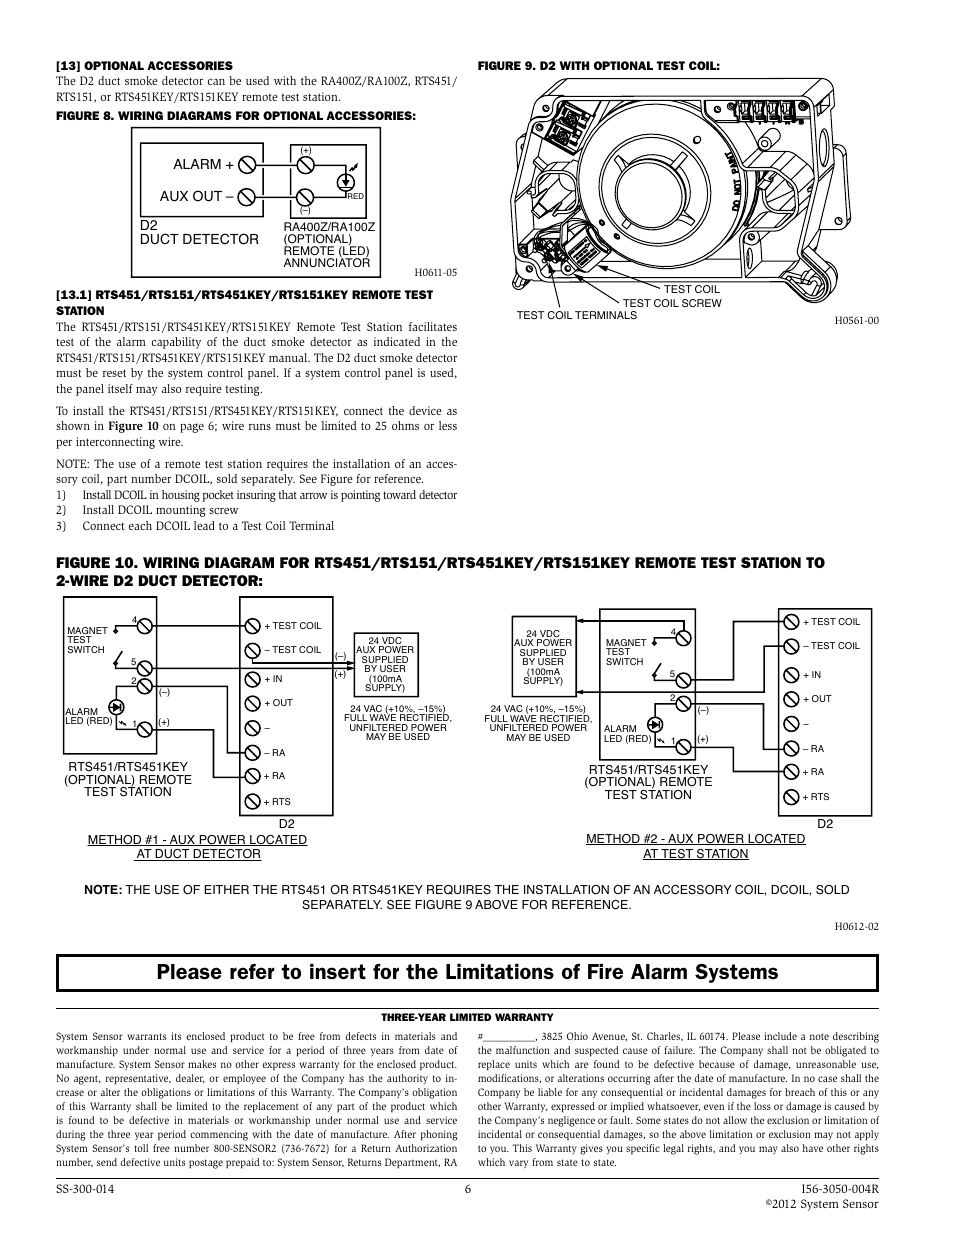 medium resolution of system sensor wiring diagram free wiring diagram for you u2022 electrical wiring diagram smoke detectors smoke detector 2151 wiring diagram